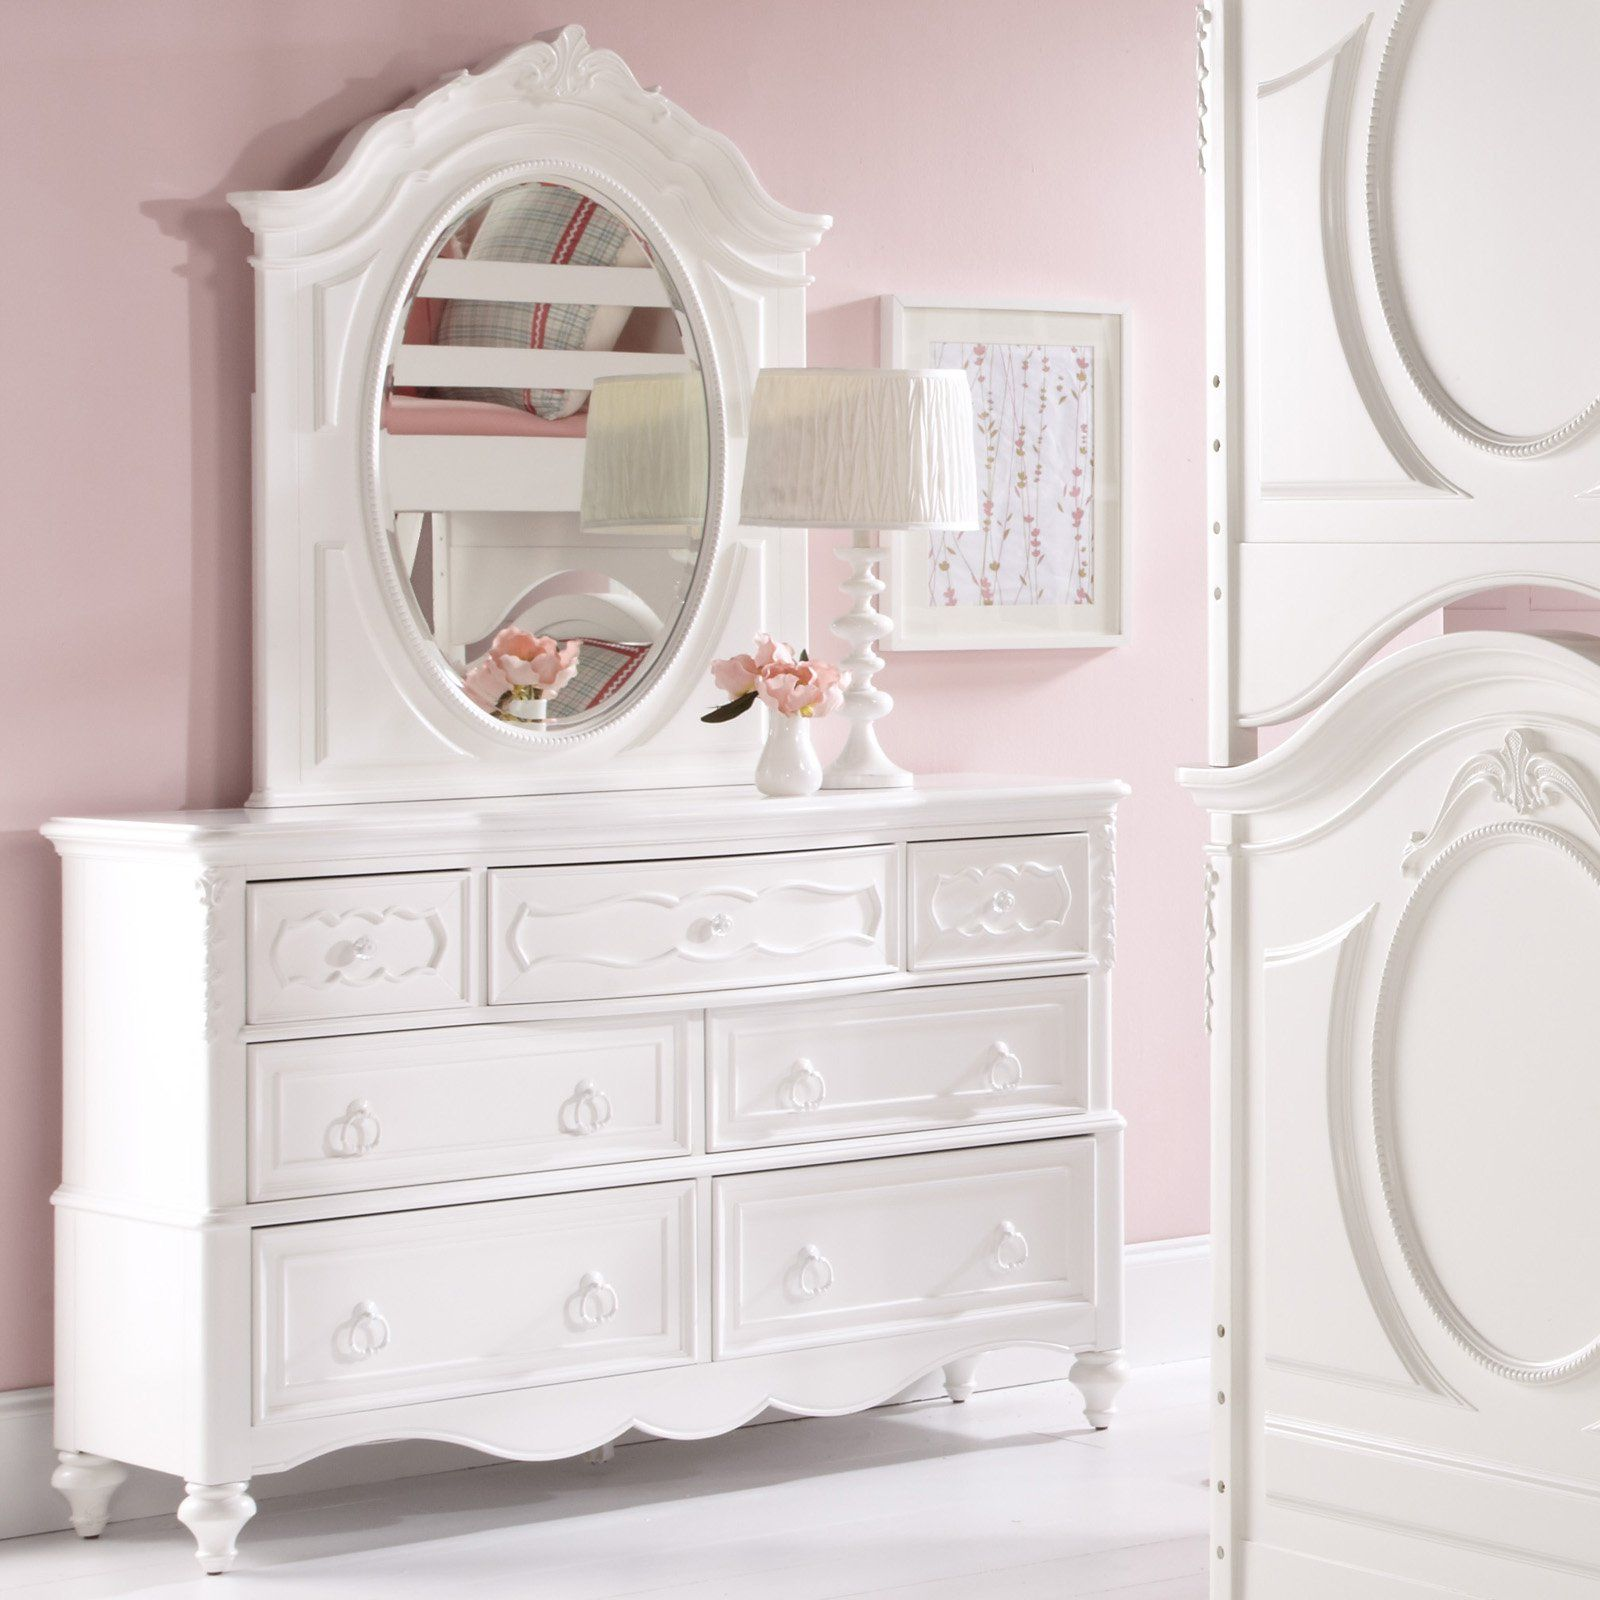 Best Sweetheart 7 Drawer Dresser White From Hayneedle Com 400 x 300